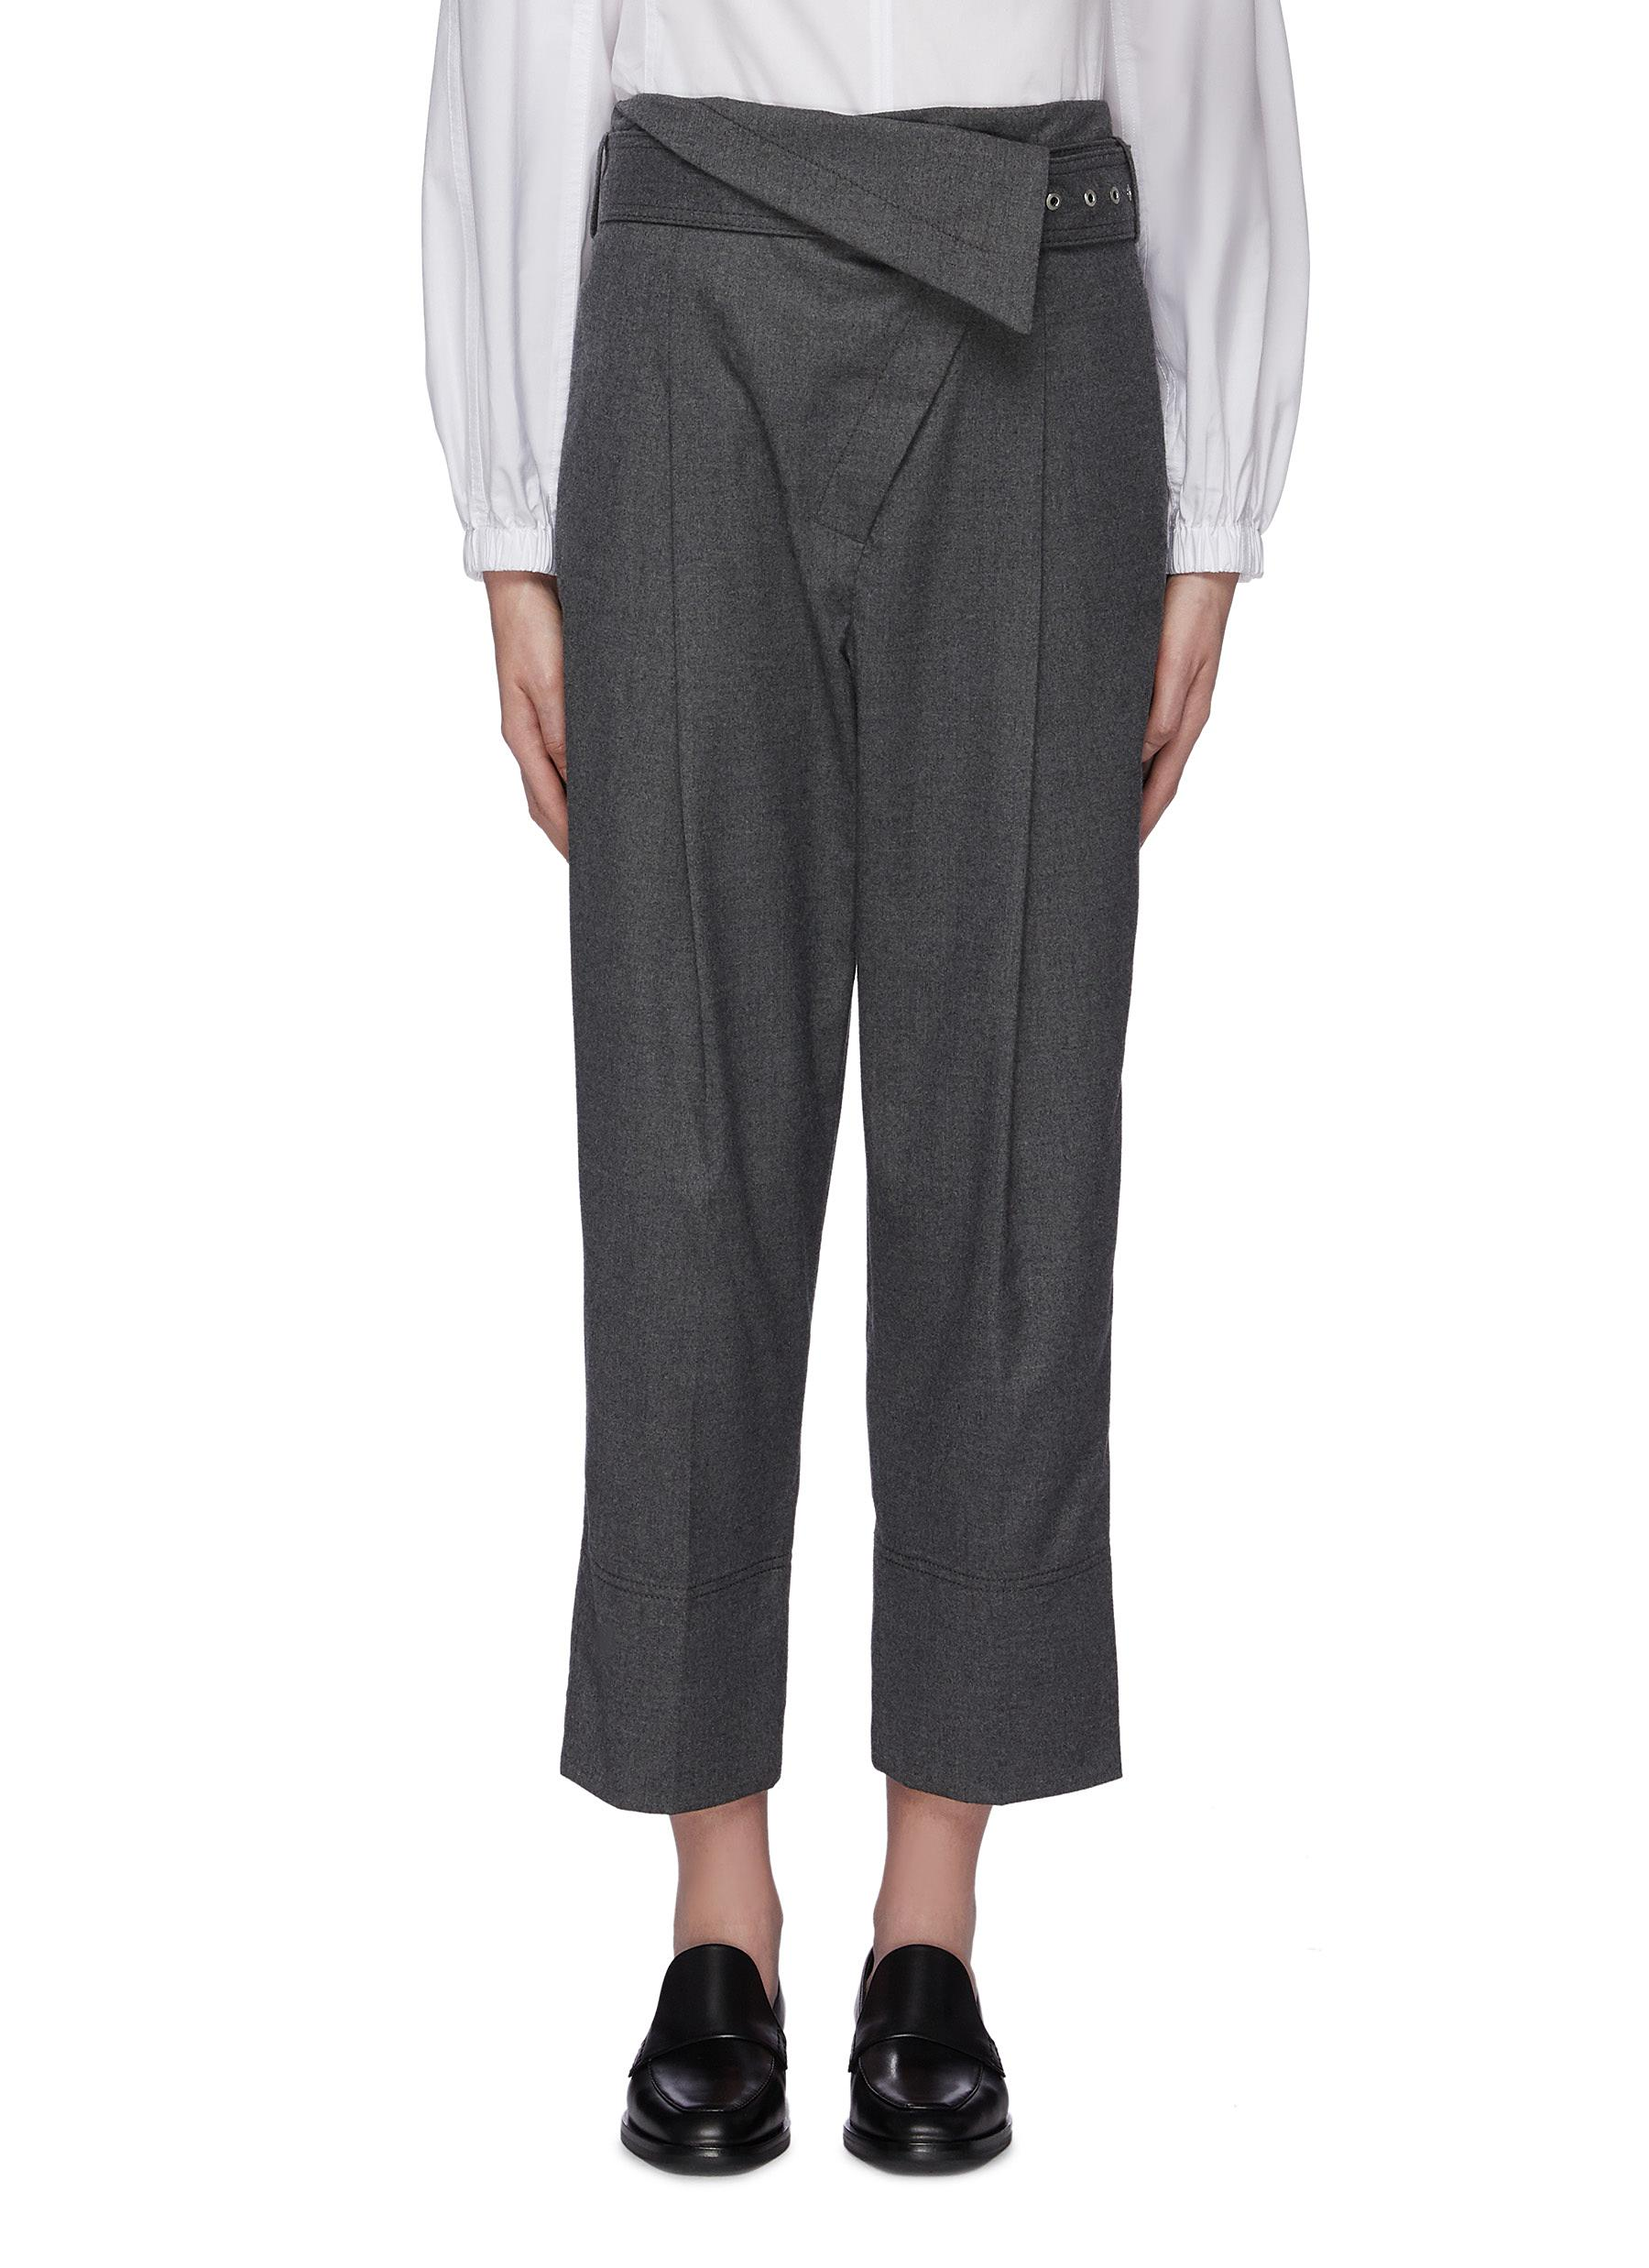 Belted foldover waist flannel pants by 3.1 Phillip Lim